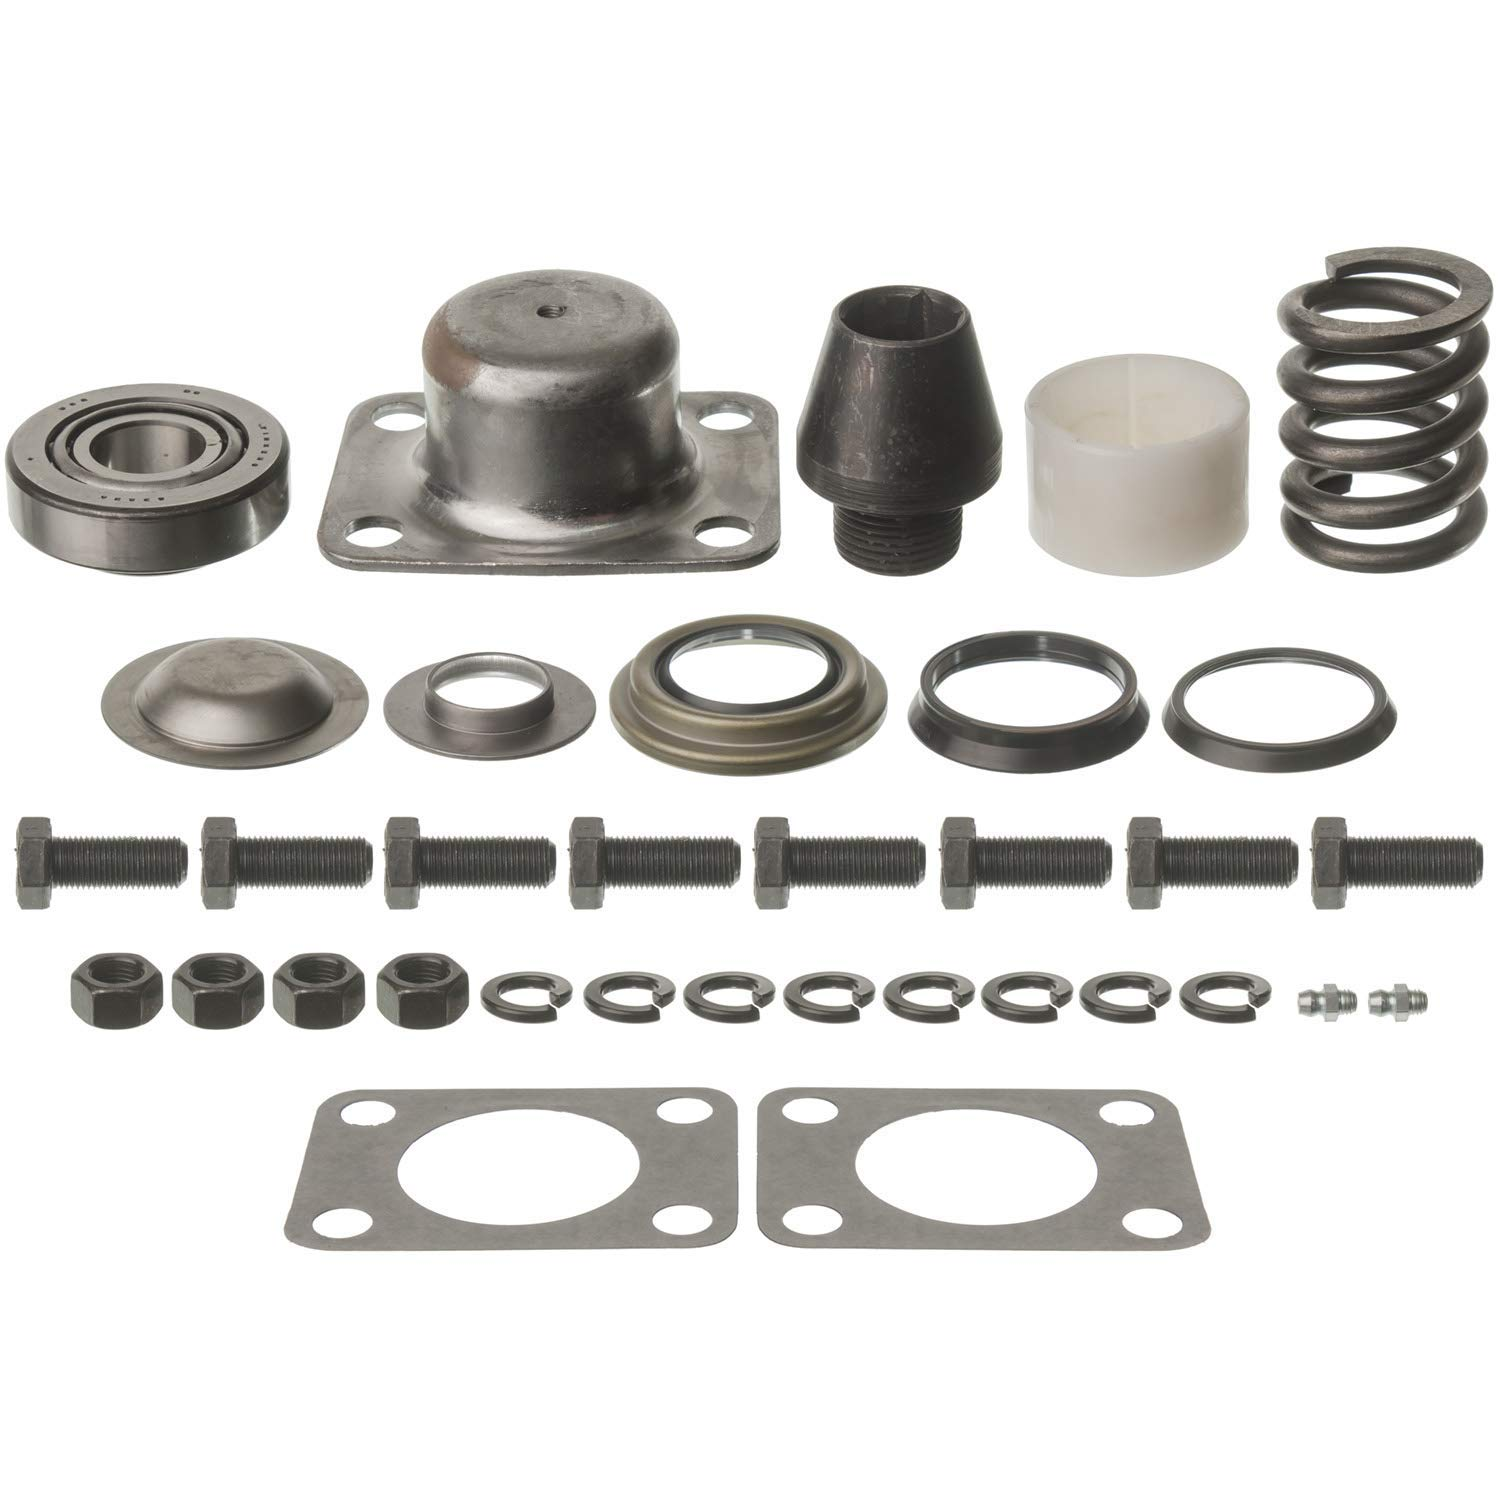 Rare Parts RP30635 King Pin Rebuild Kit